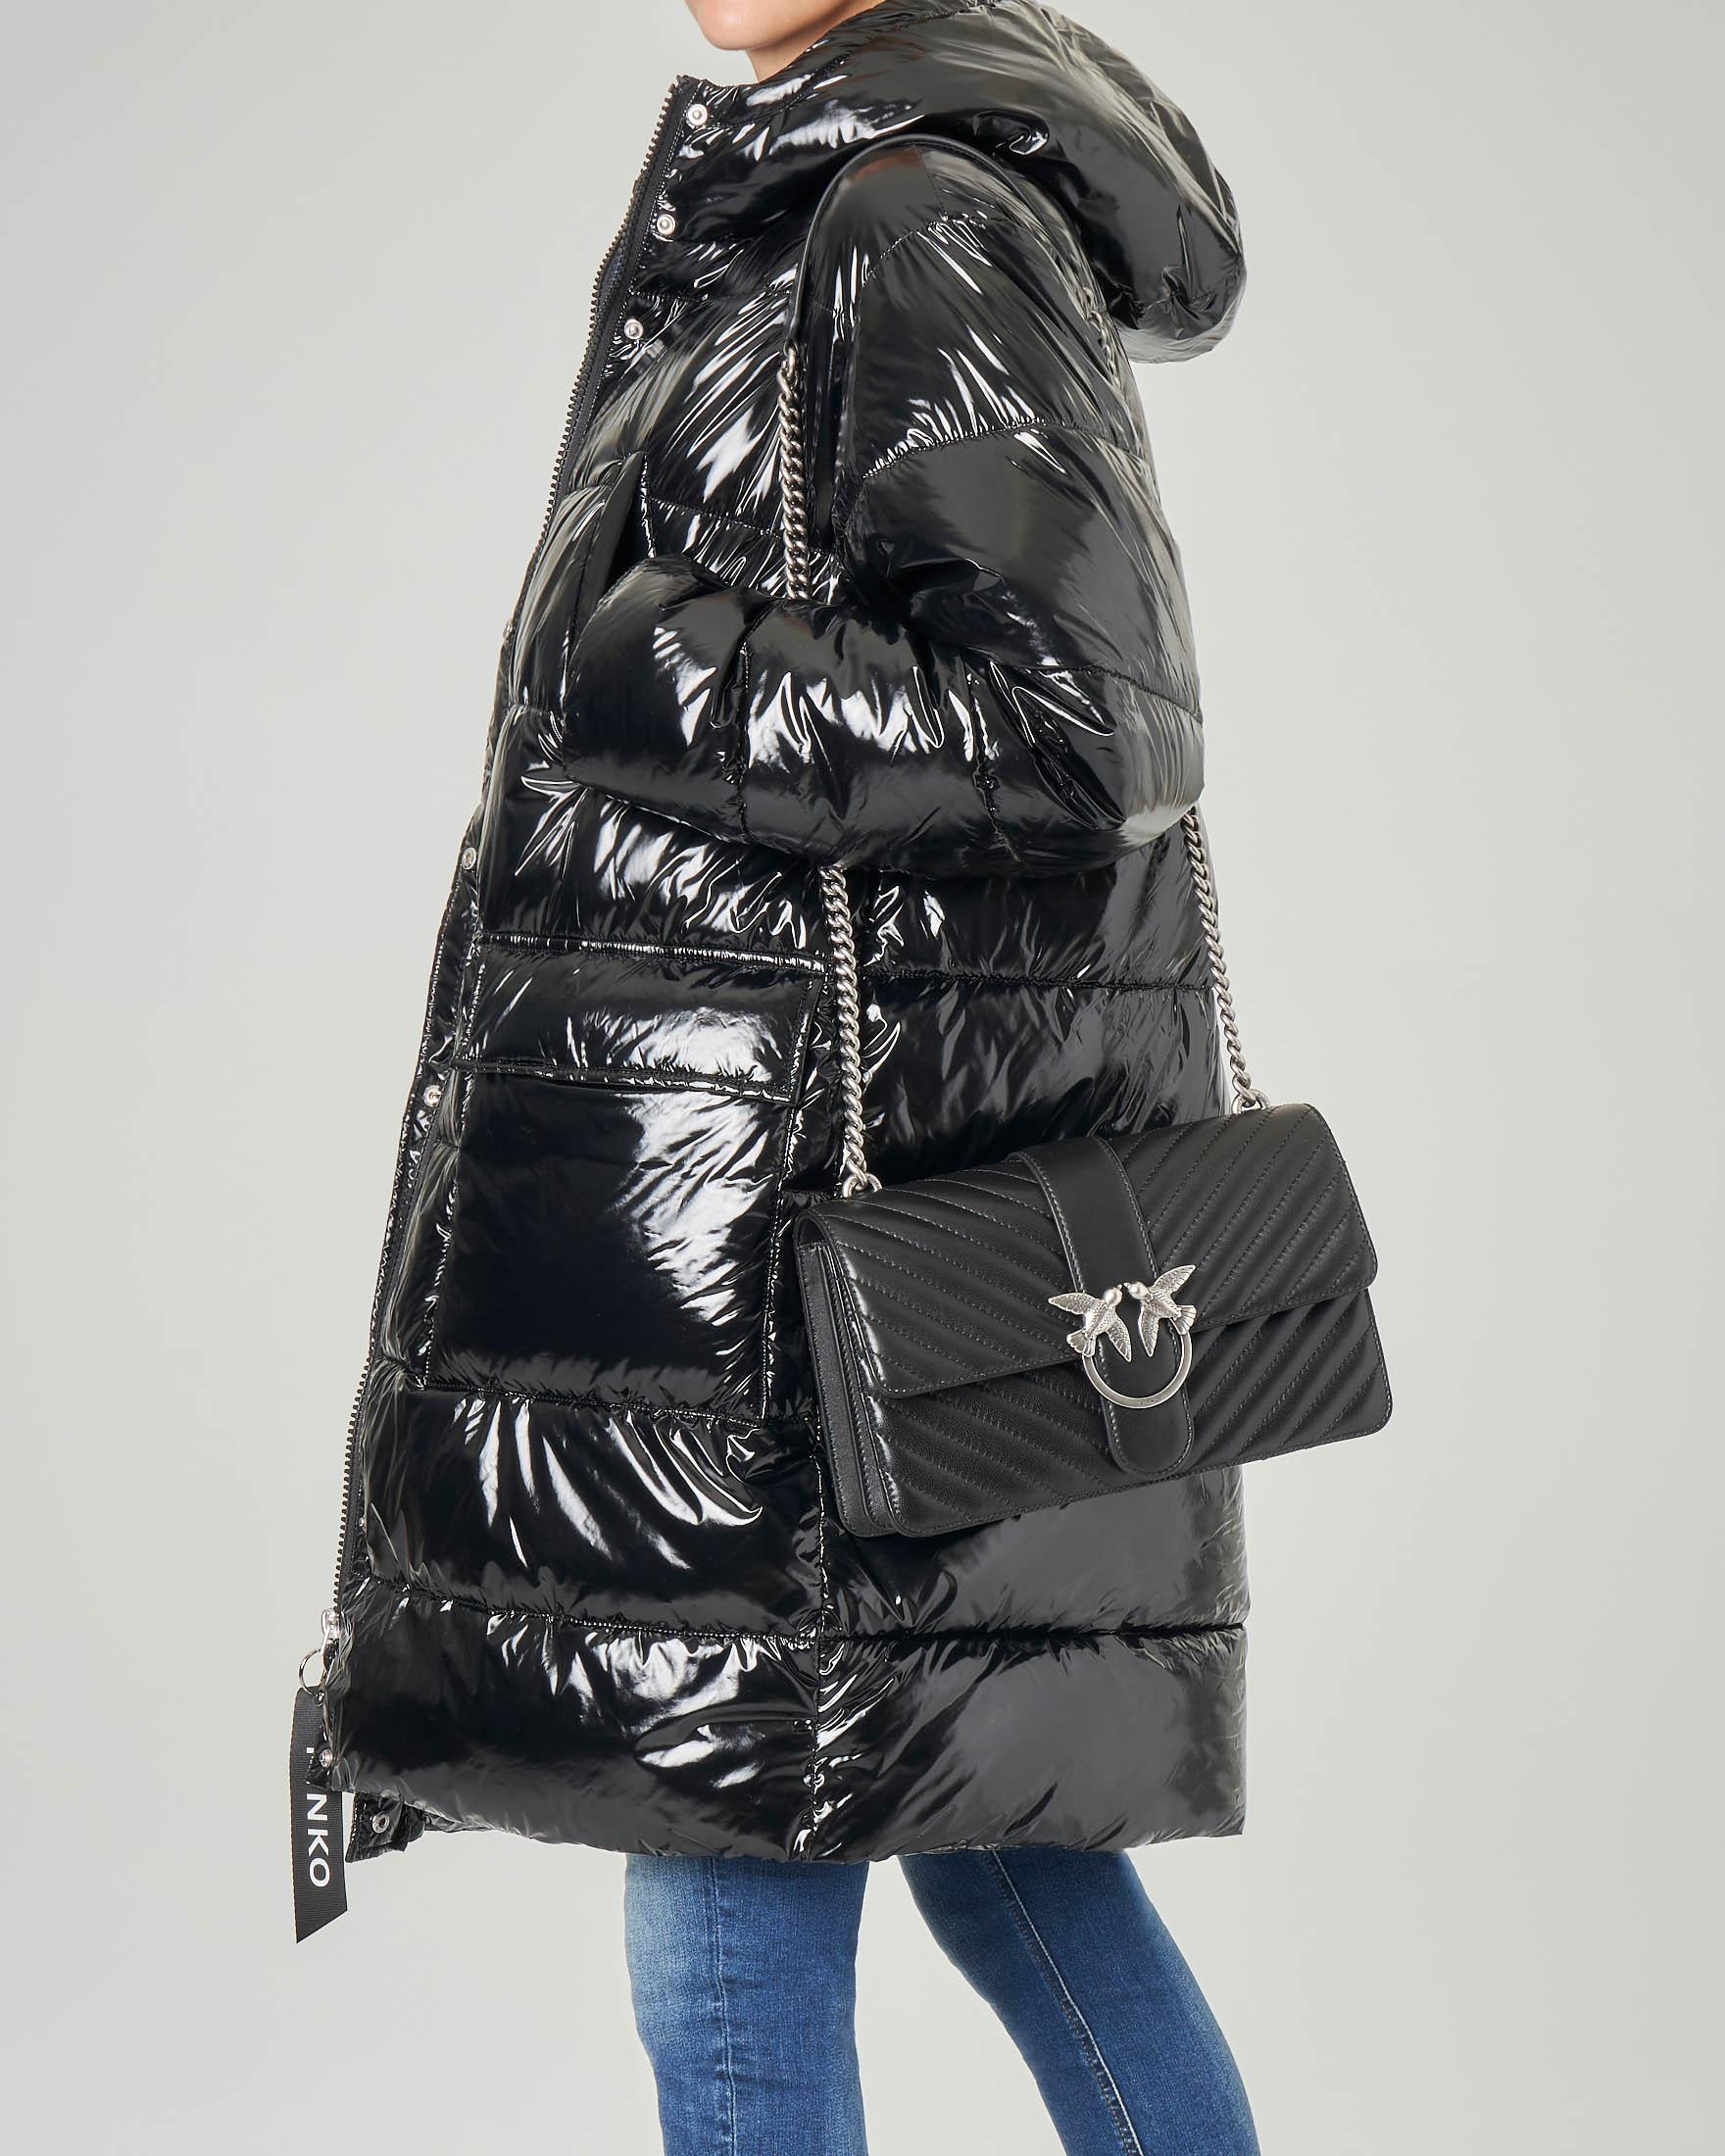 Love Bag in pelle nera quilted con tracolla a catena